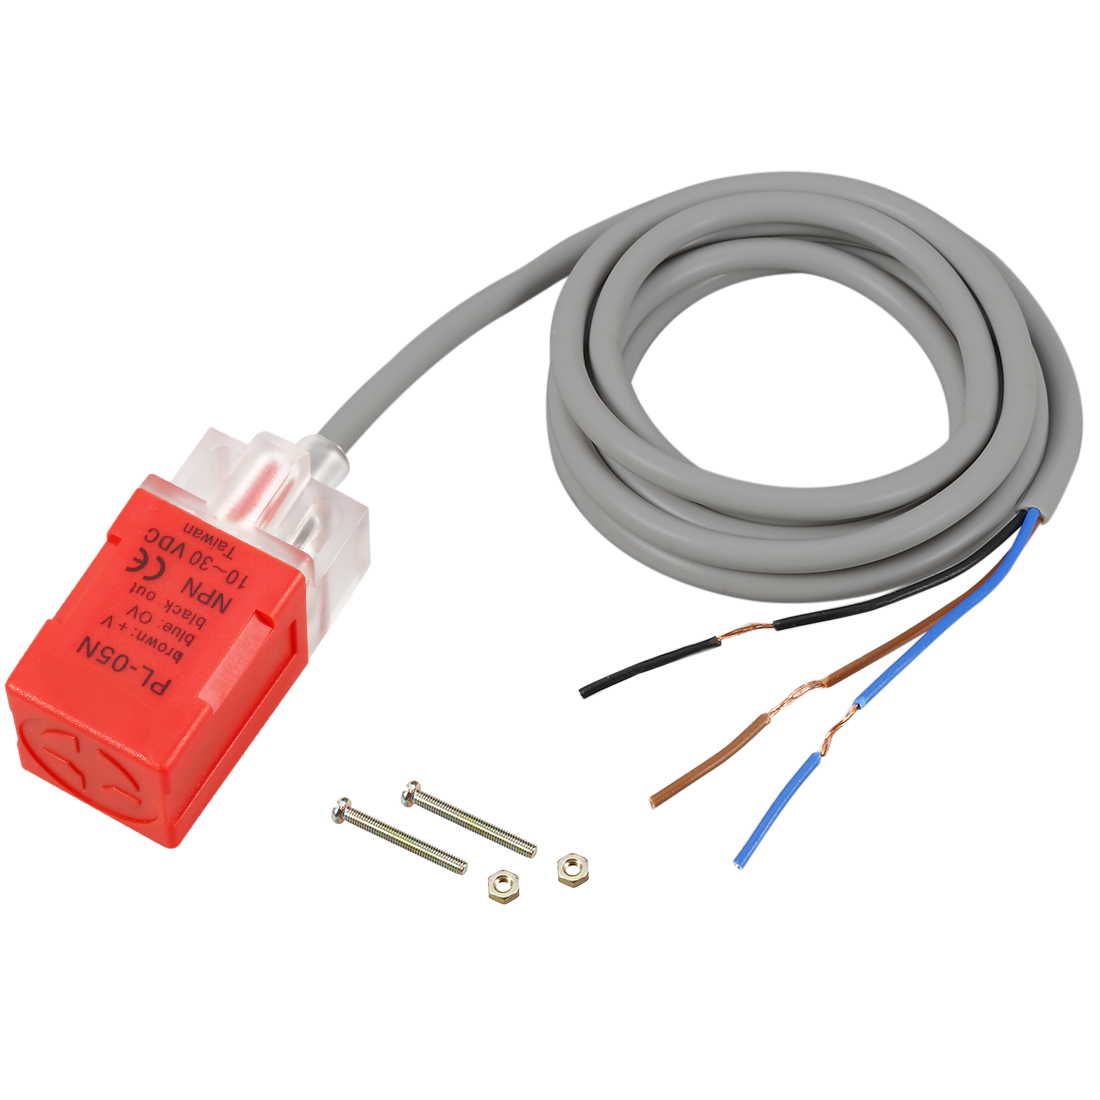 Pl 05n 5mm Inductive Proximity Sensor Switch Detector Npn No Dc 10 3wire In This Case You Would Just Connect The Brown Wire 30v 200ma